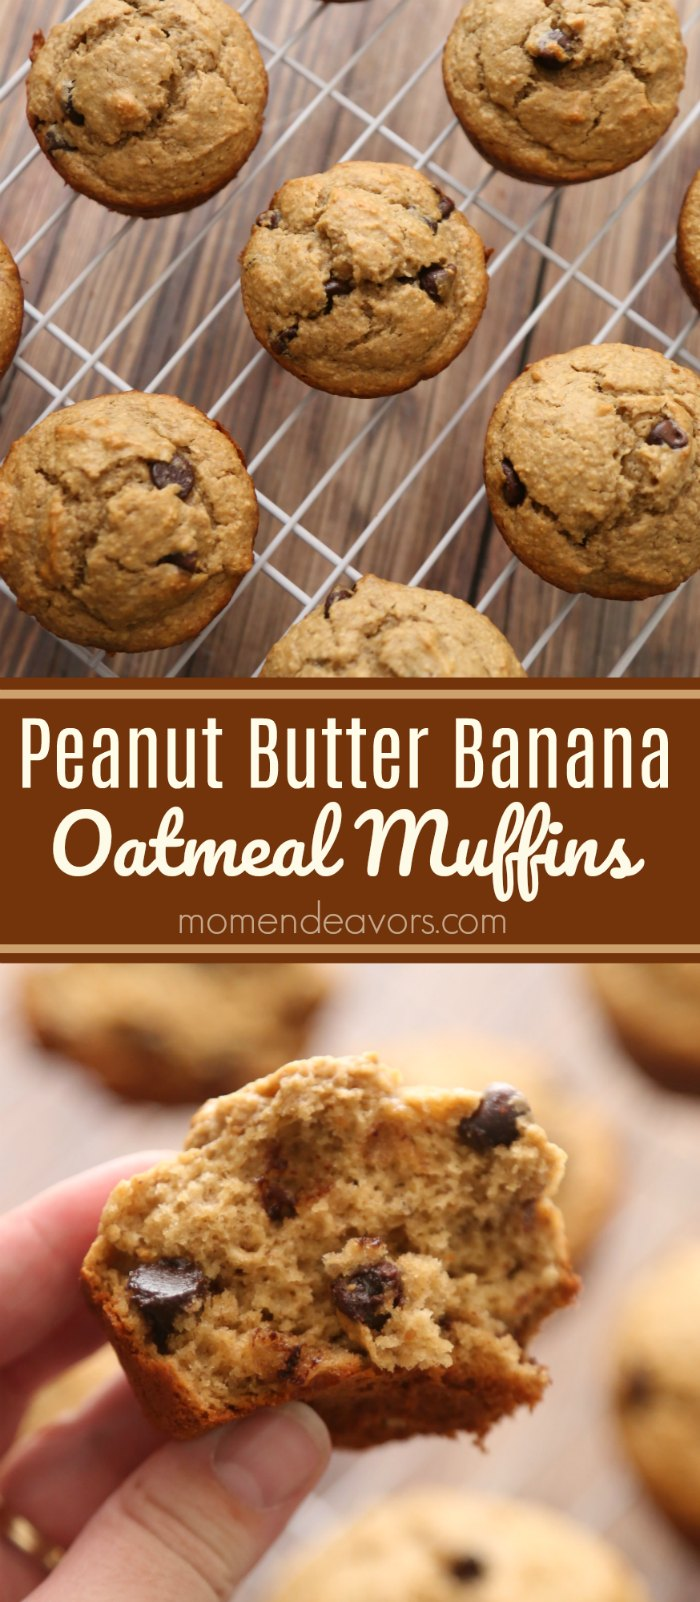 Peanut Butter Banana Oatmeal Muffins Recipe